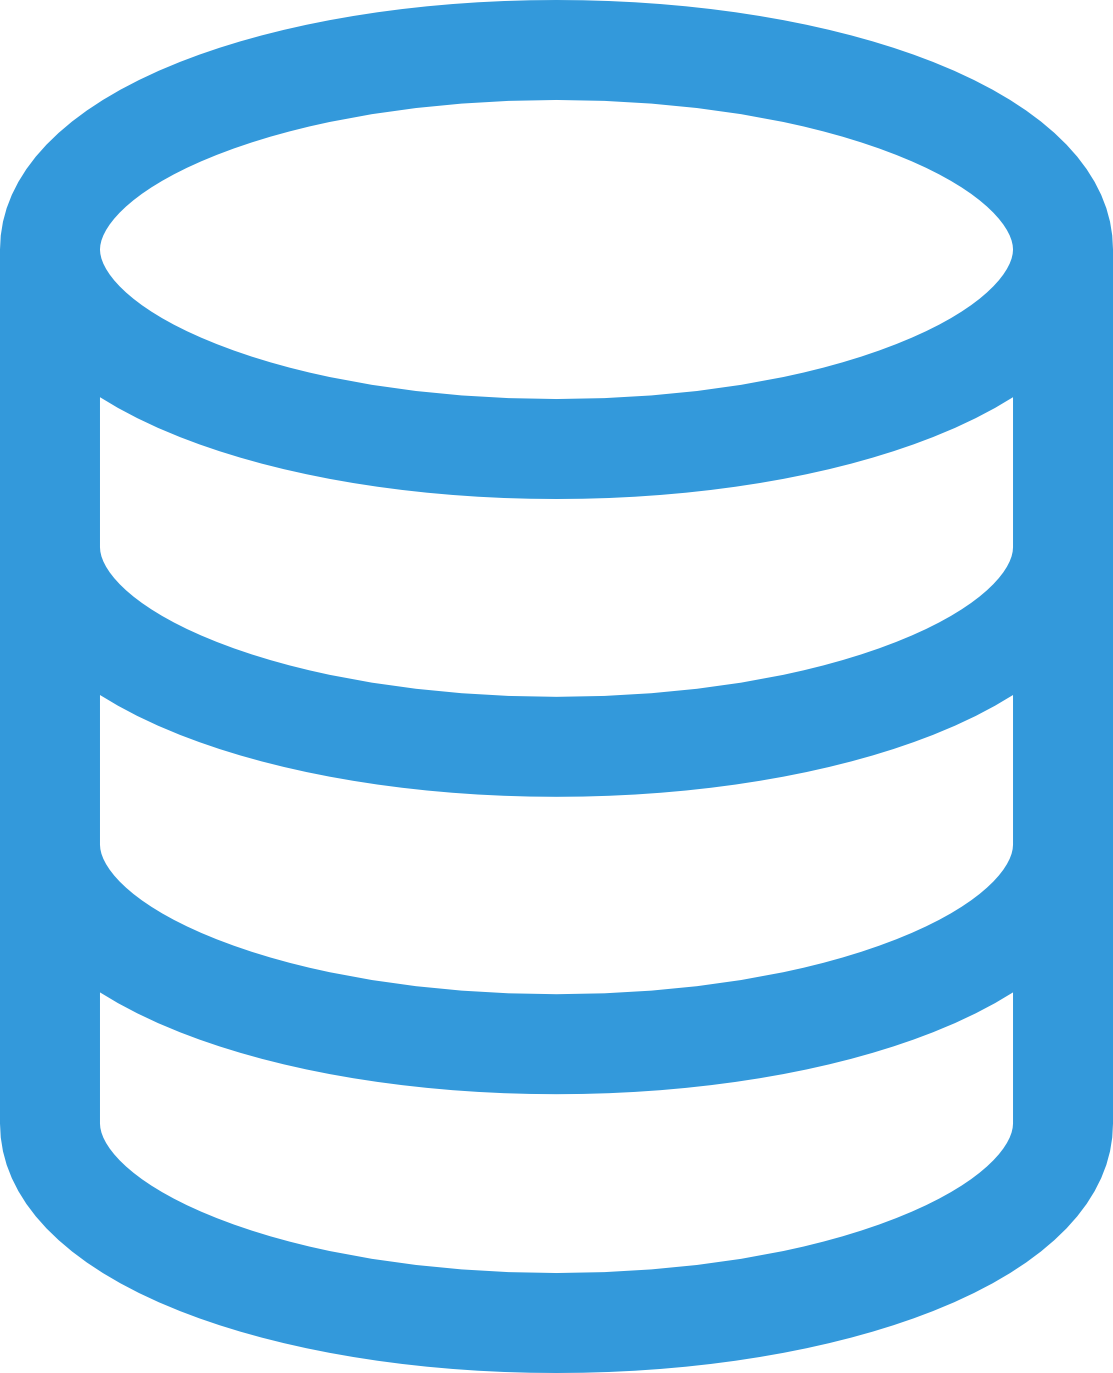 Database Png Icon #244761.